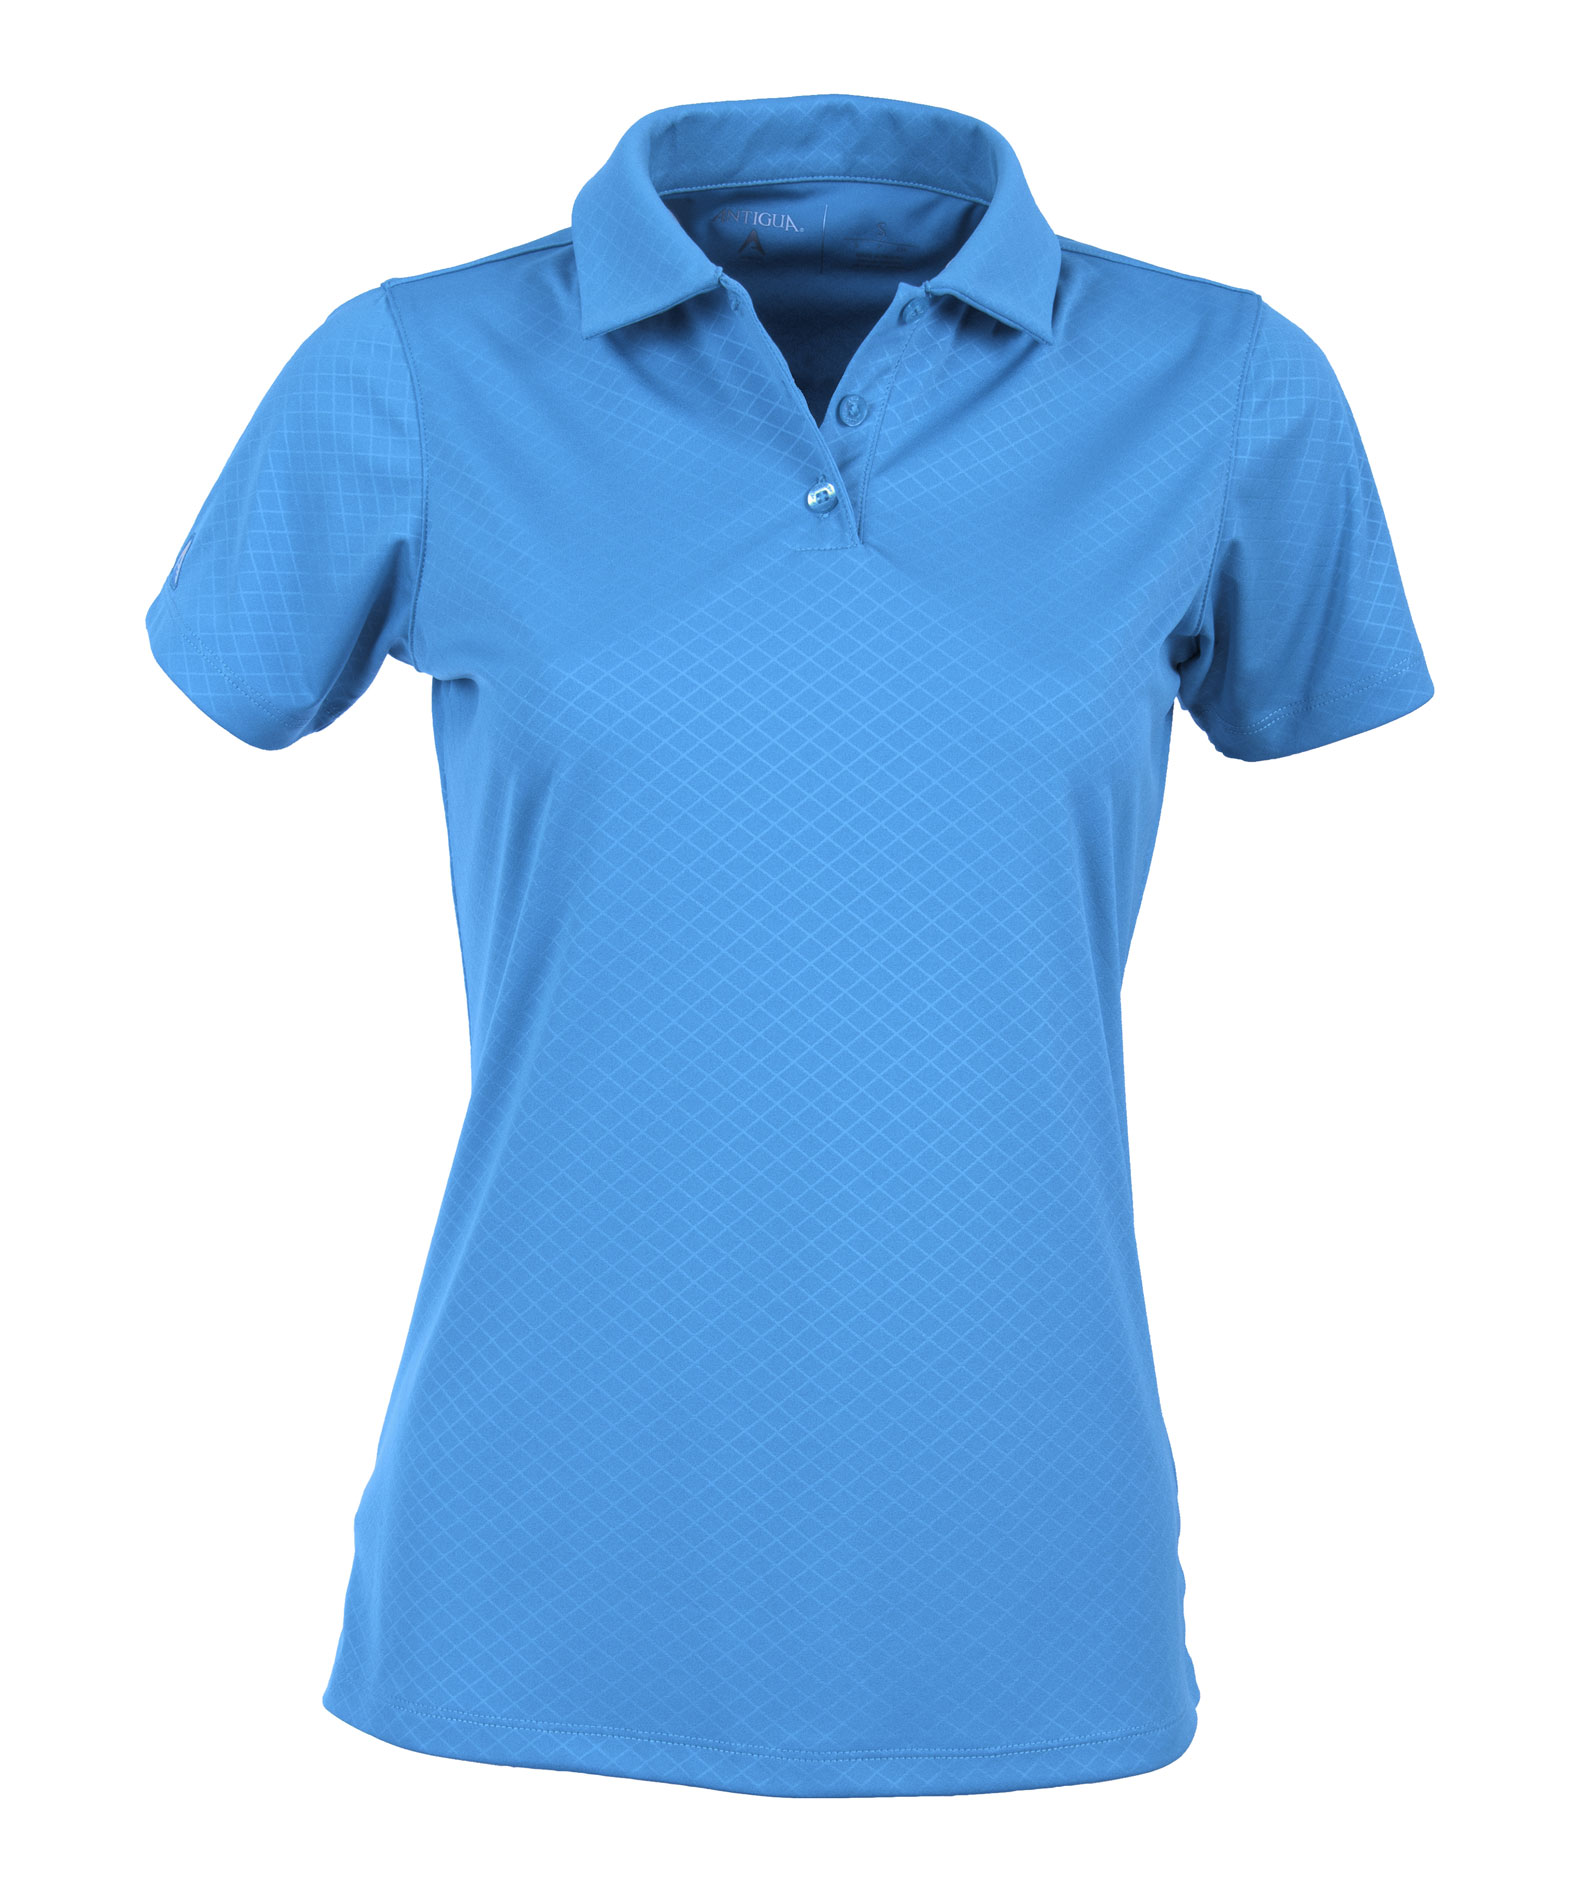 Antigua Womens Inspire Polo